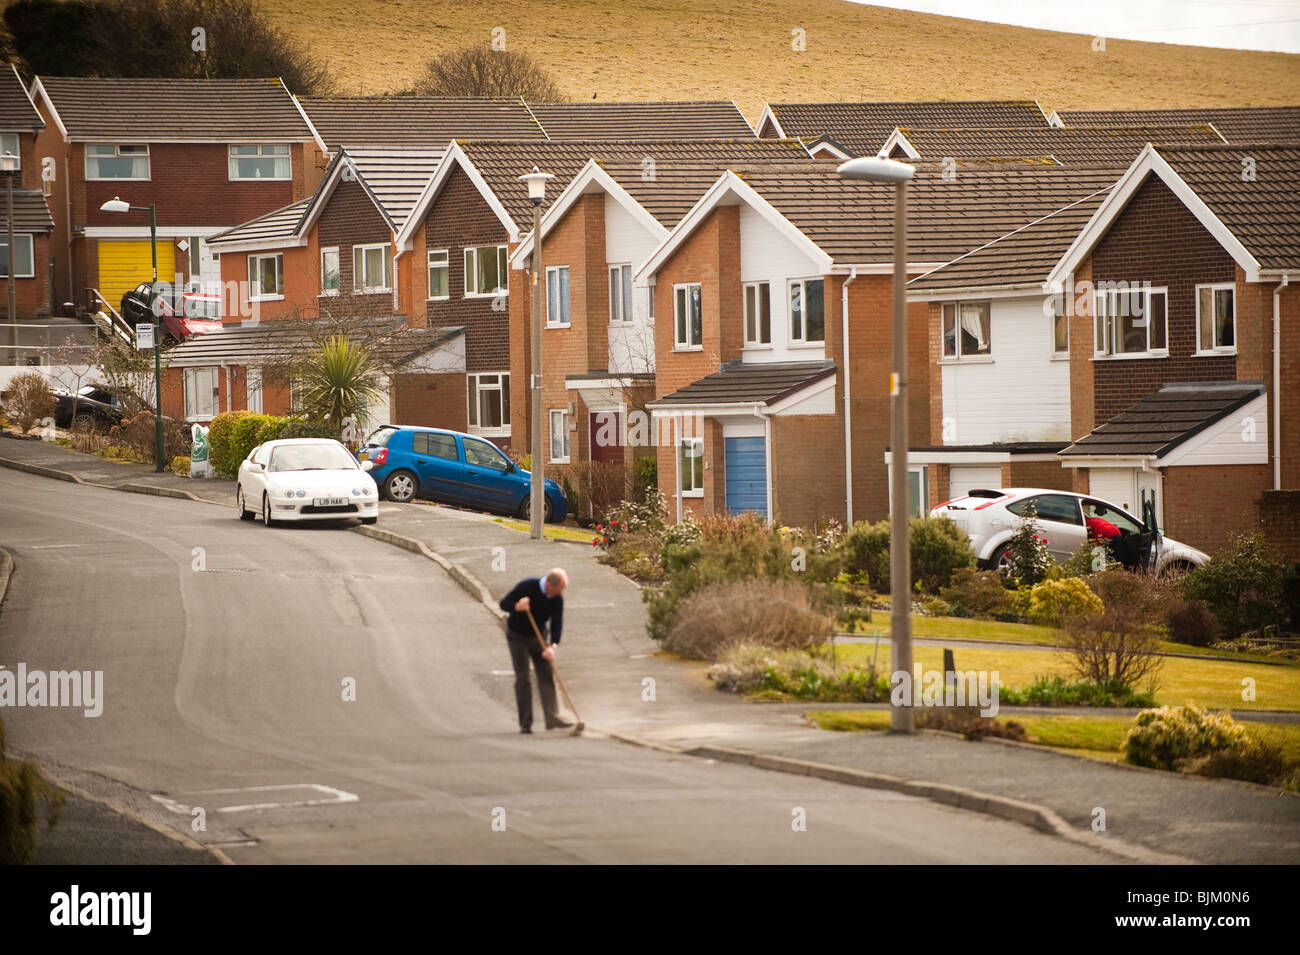 1960S Houses 1960S Houses Stock Photos & 1960S Houses Stock Images  Alamy